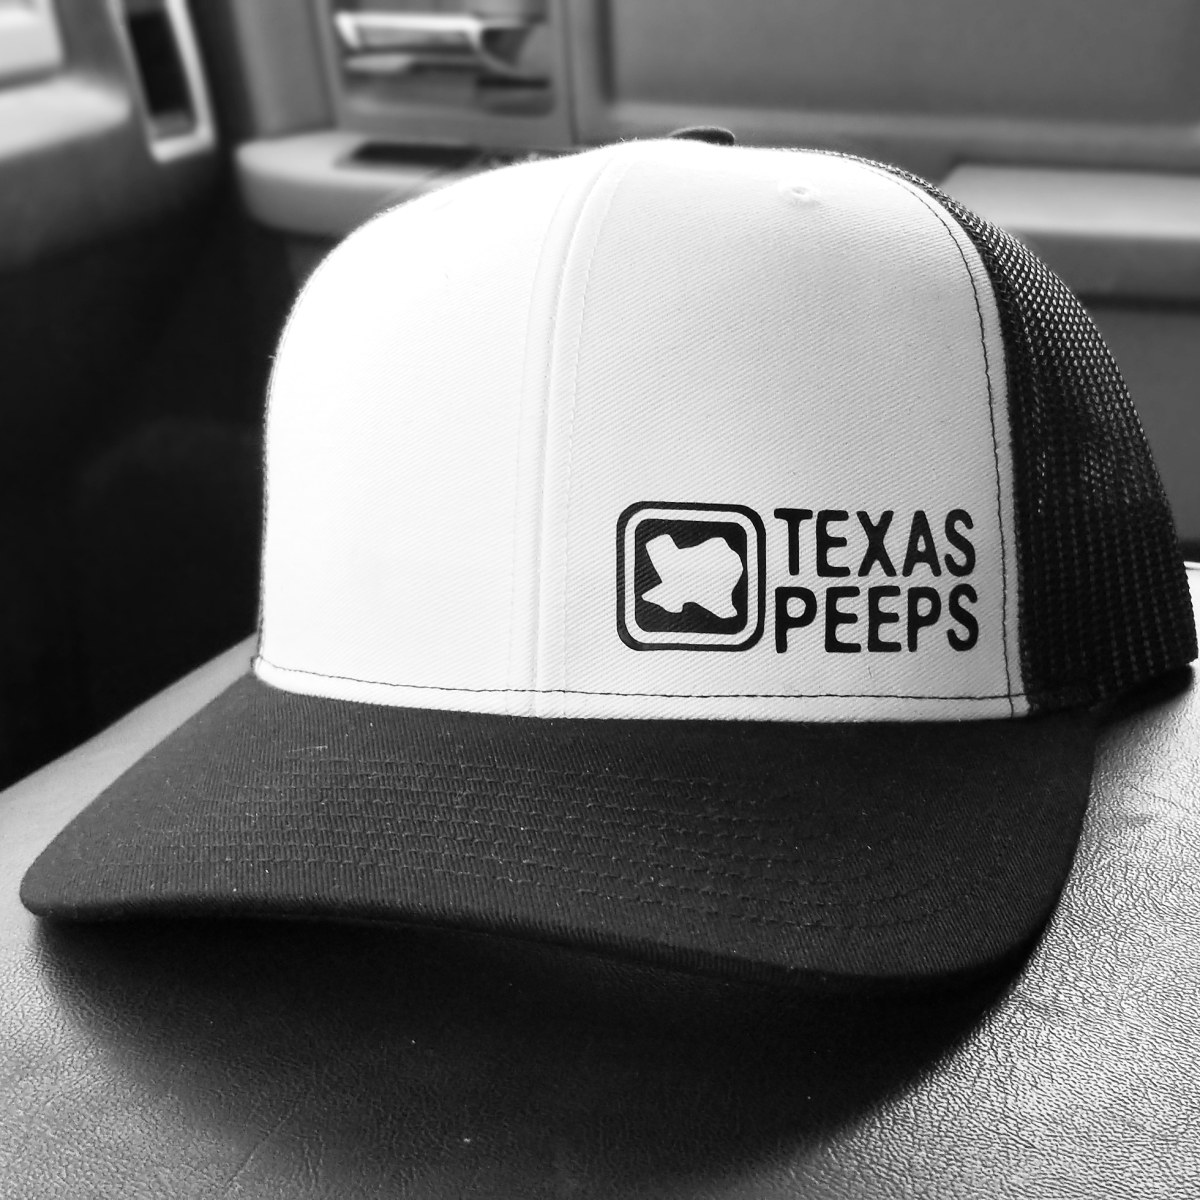 Texas Peeps Label Series Caps